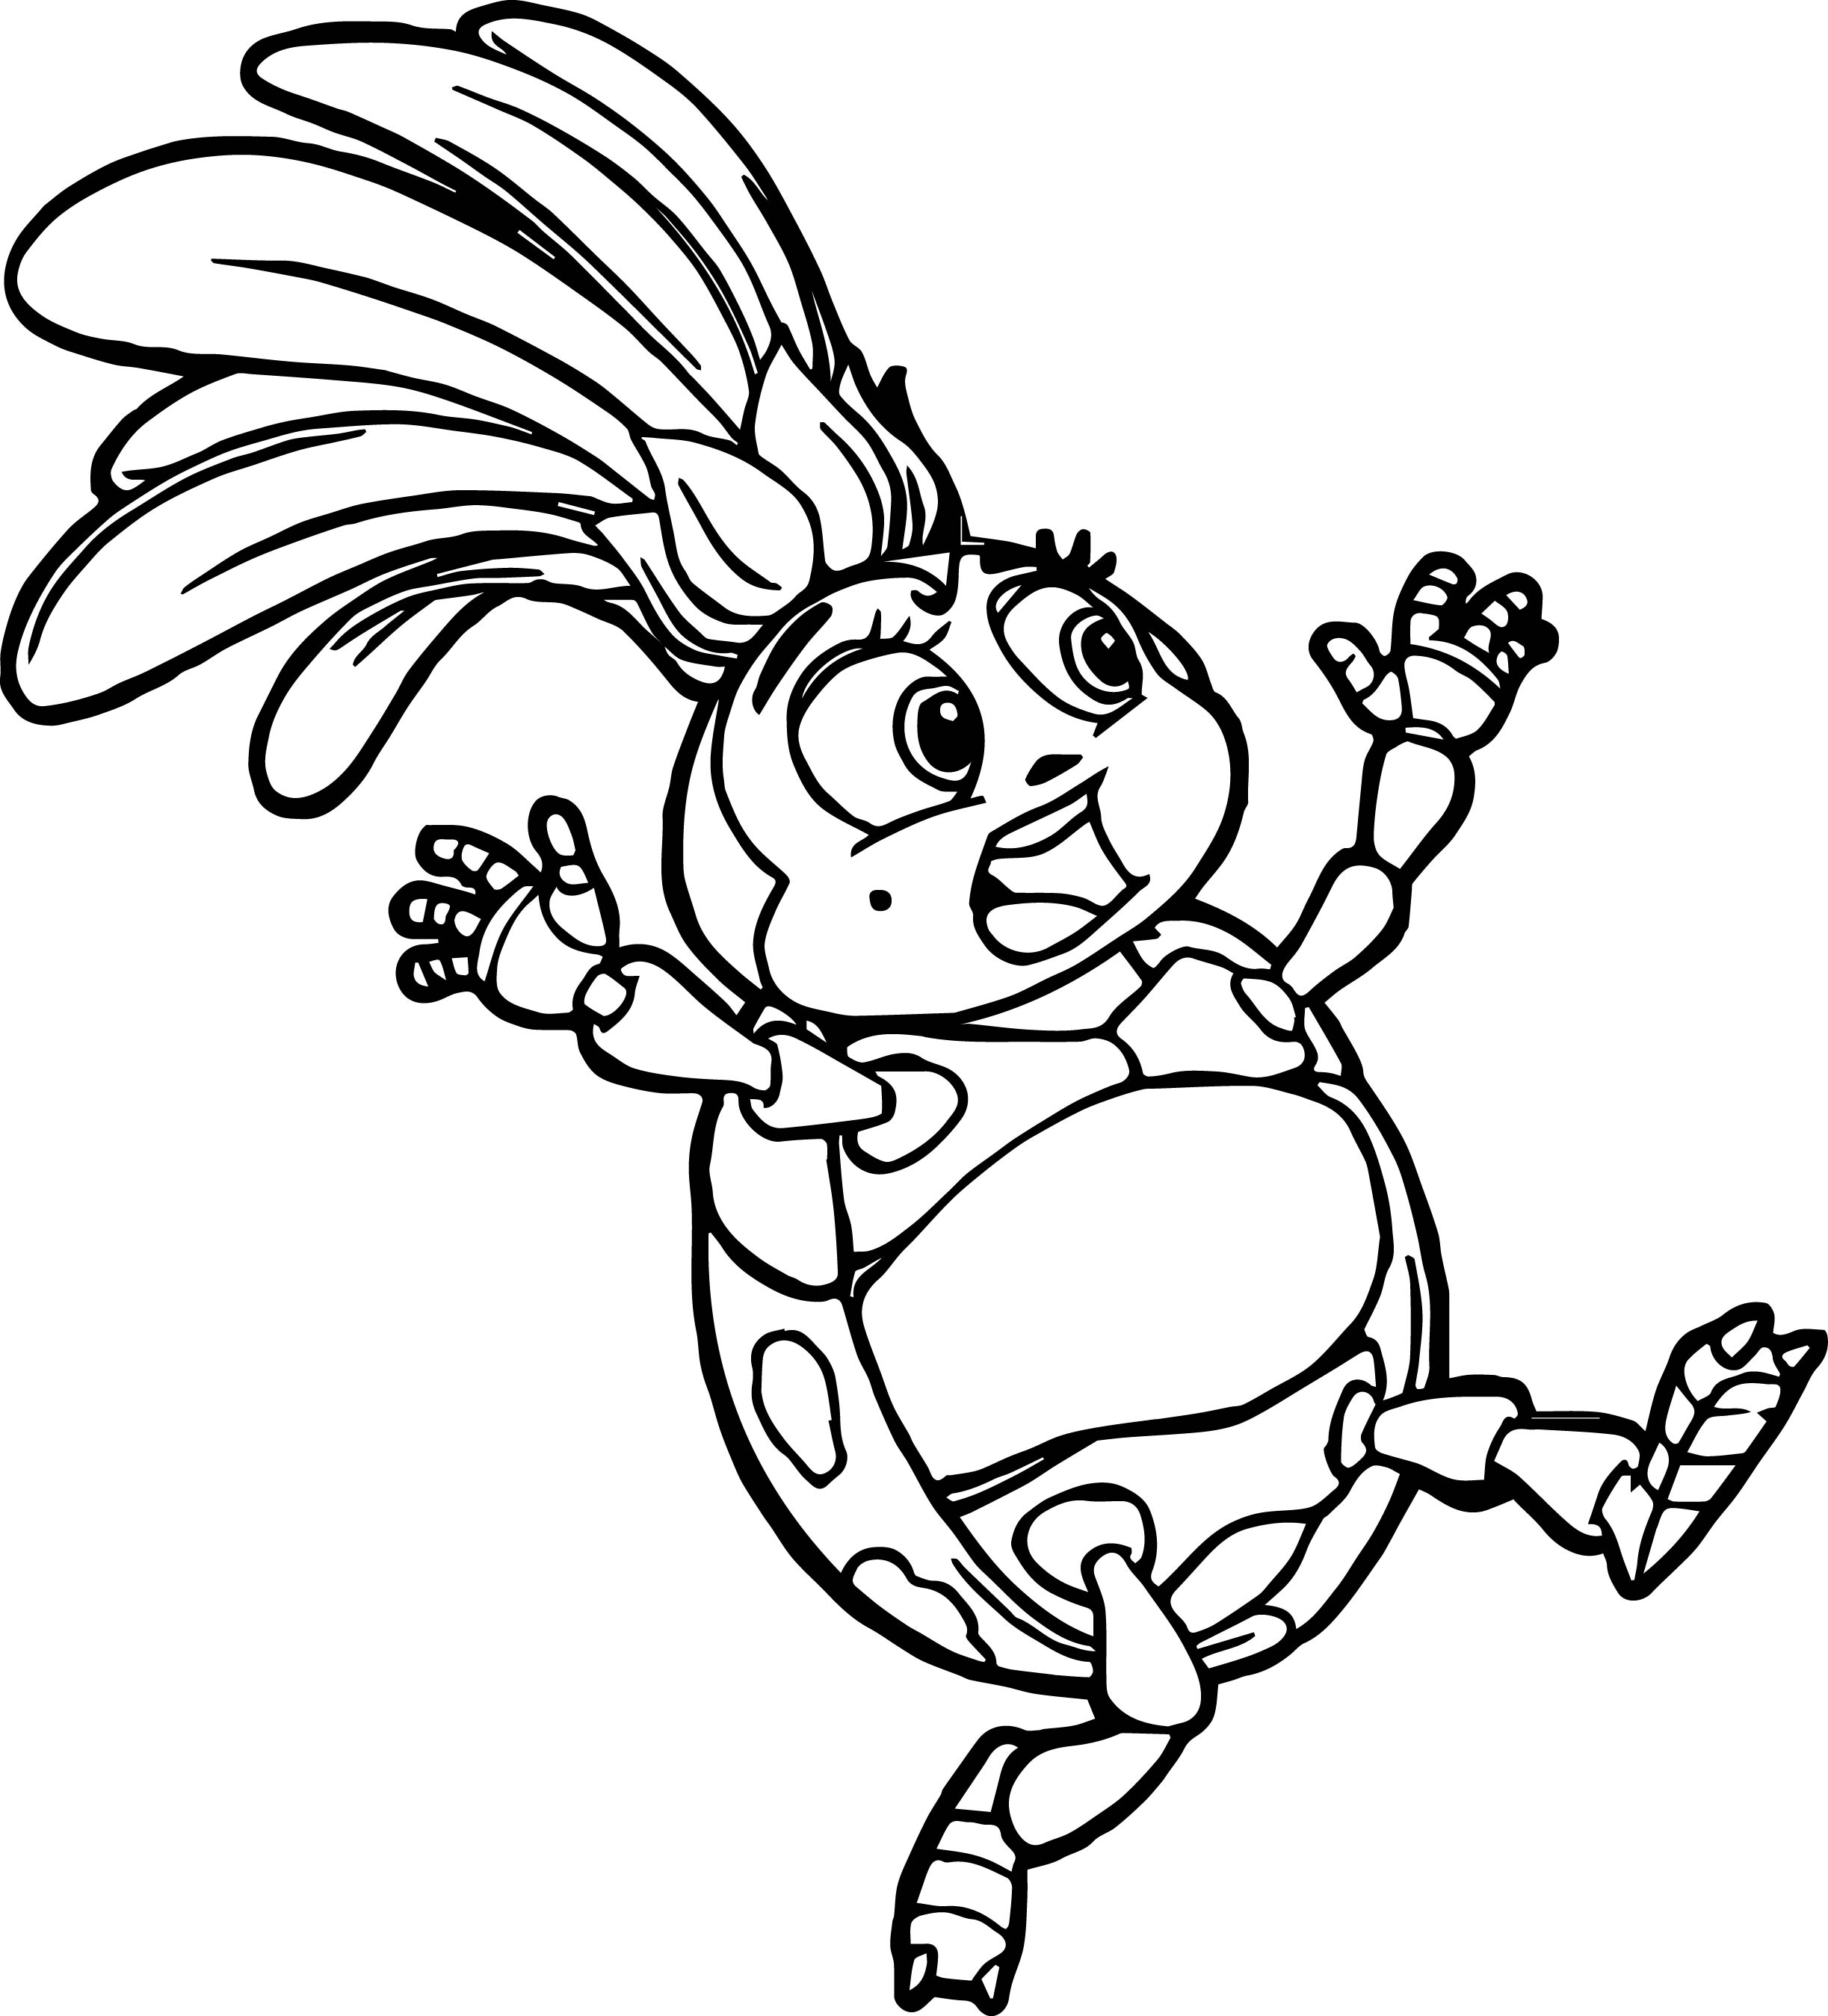 francis ladybug coloring page - Ladybug Coloring Pages